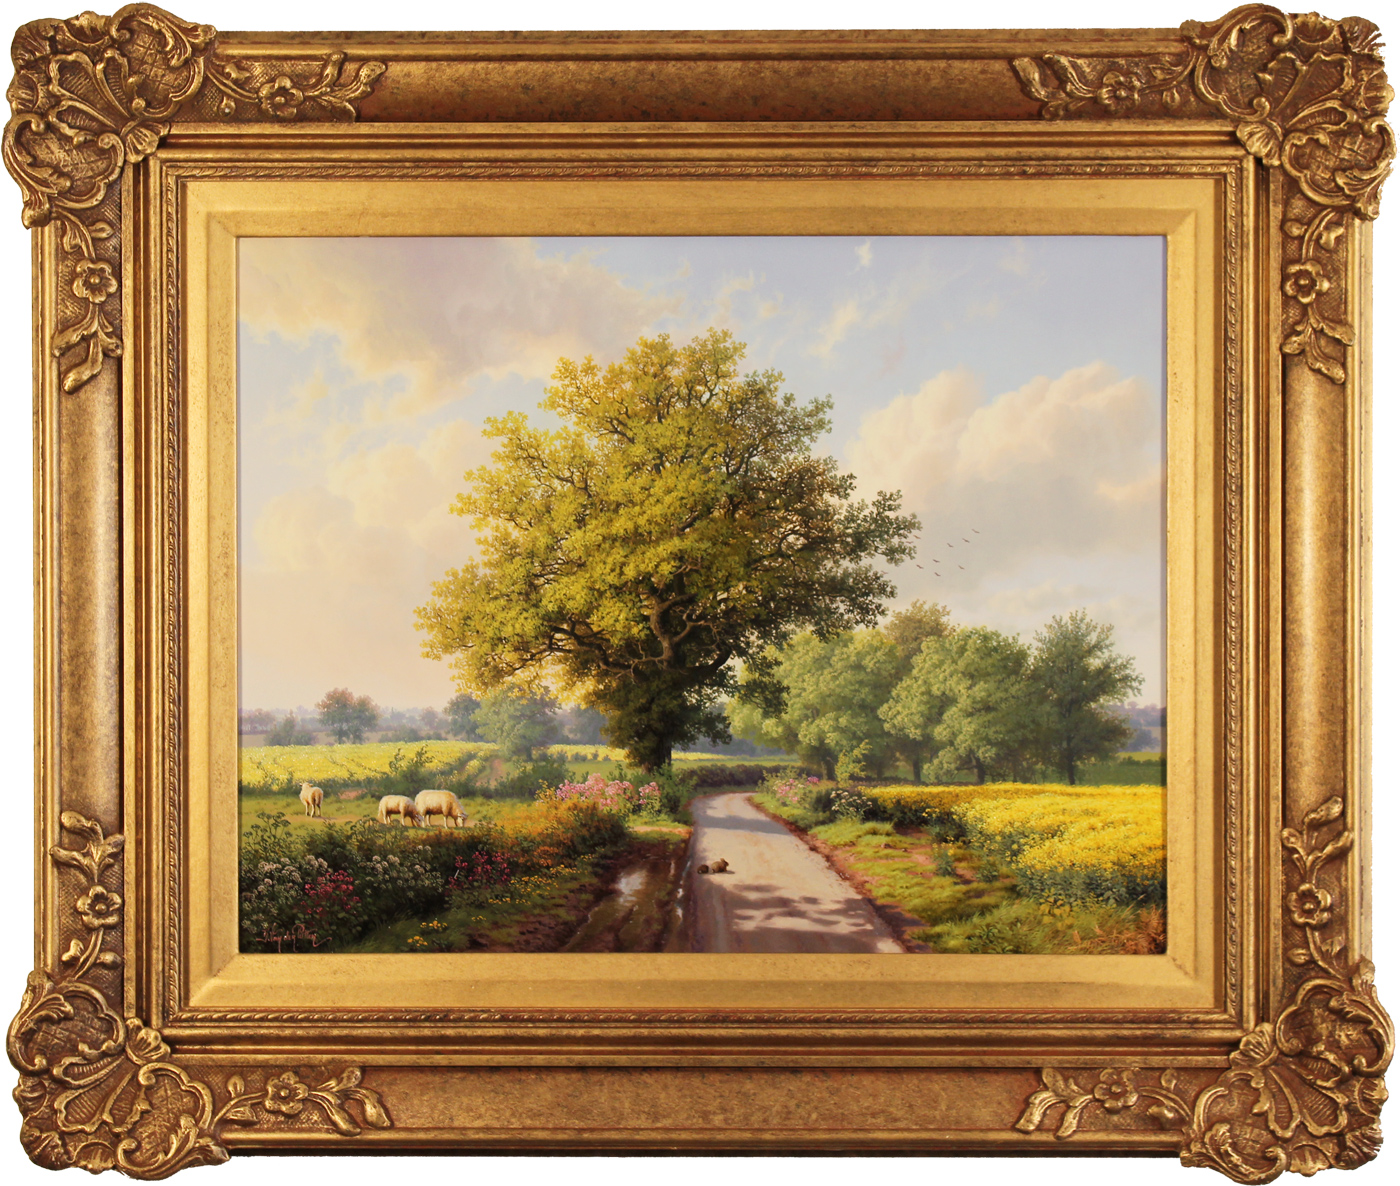 Daniel Van Der Putten, Original oil painting on panel, Road to Longborough in May, The Cotswolds. Click to enlarge